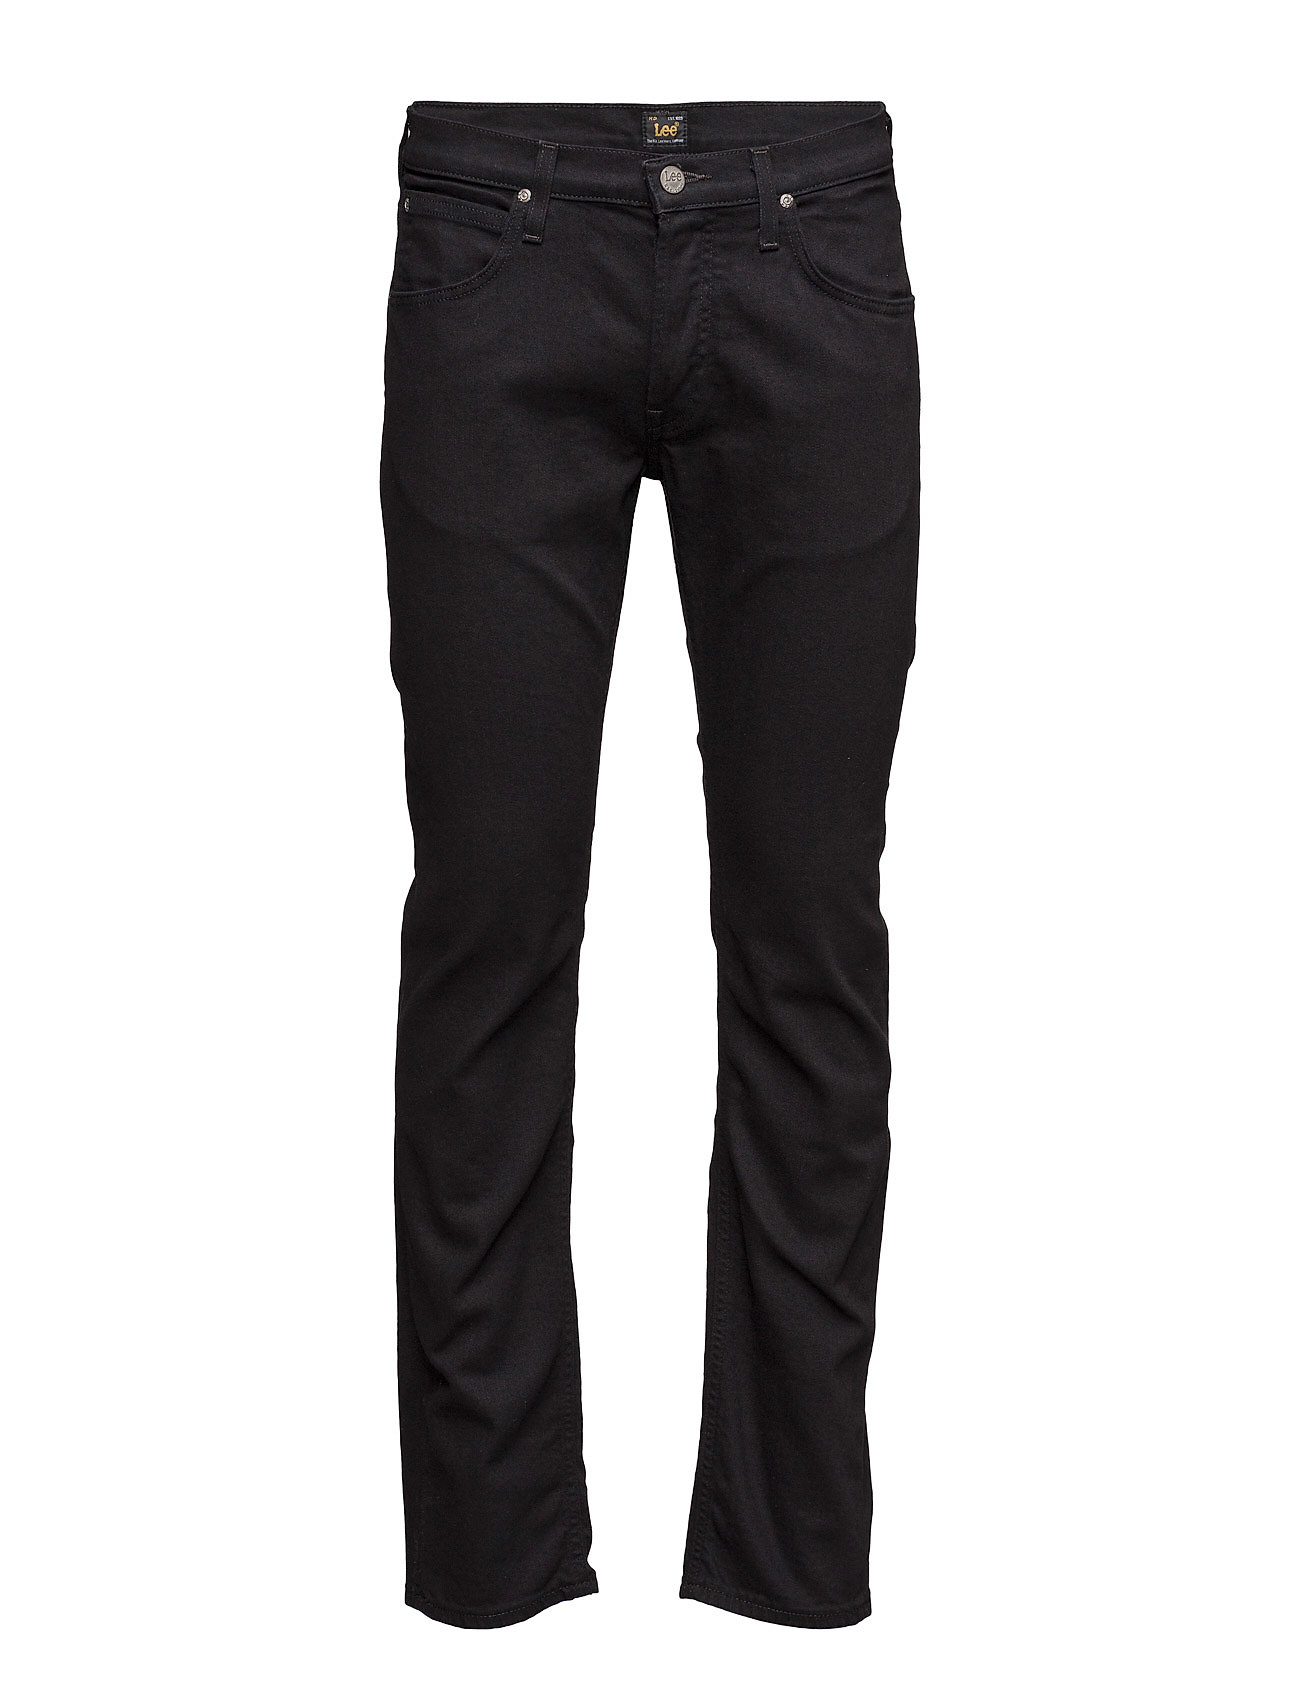 Lee Jeans DAREN CLEAN BLACK - CLEAN BLACK